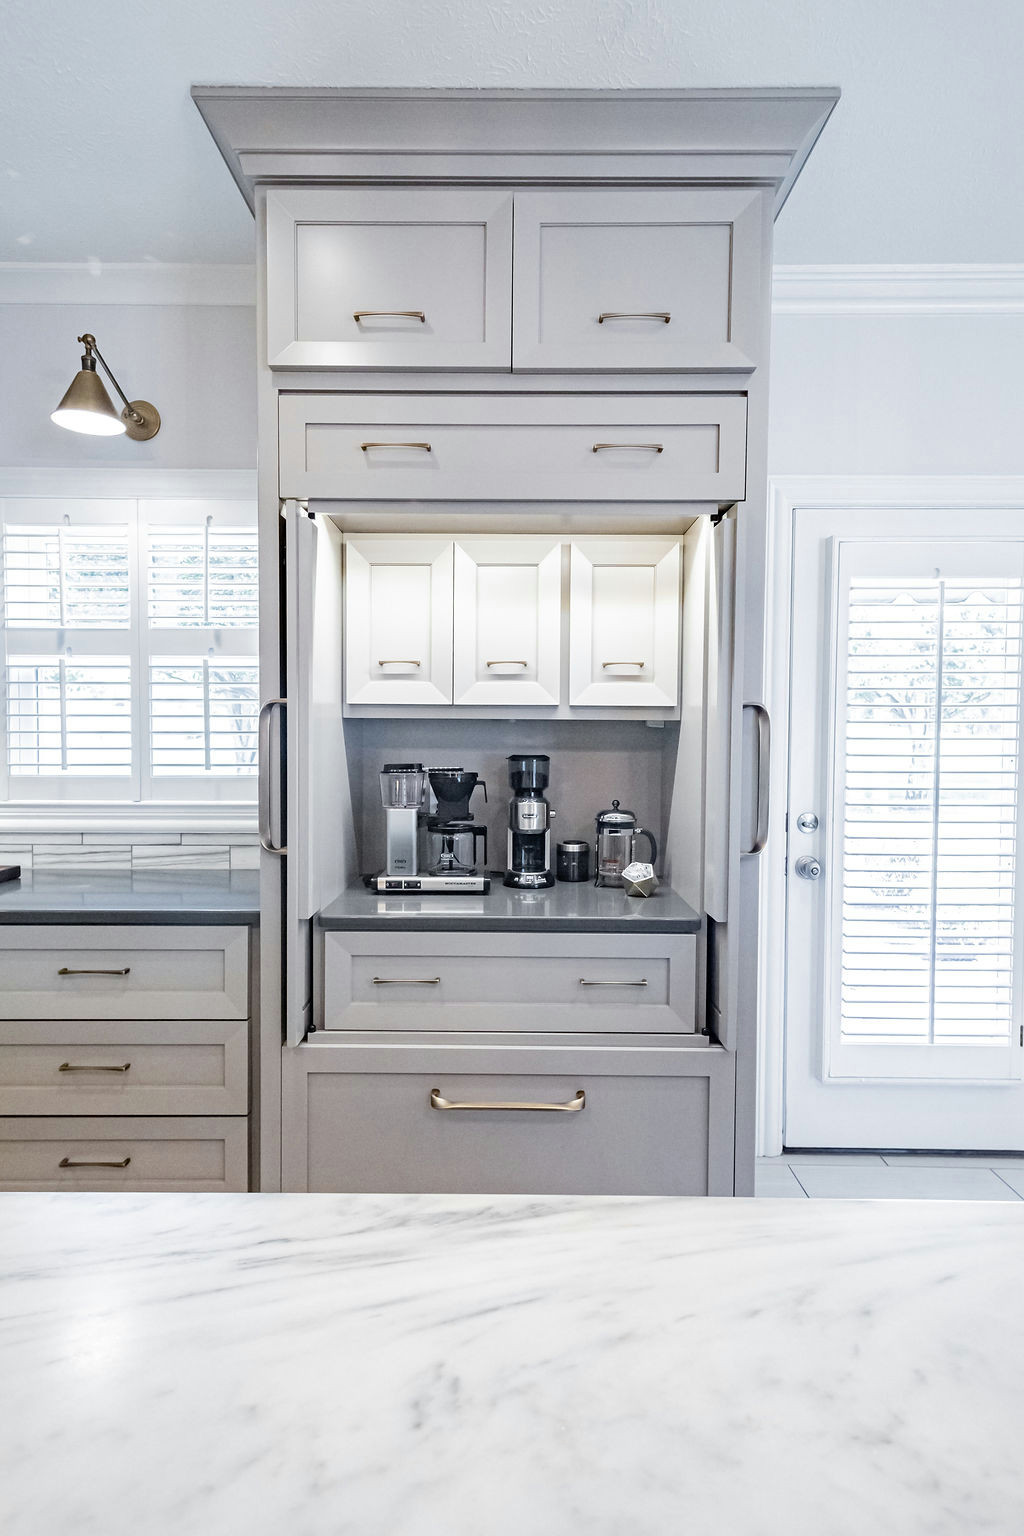 Pocket door appliance center with internal cabinets for conceal items